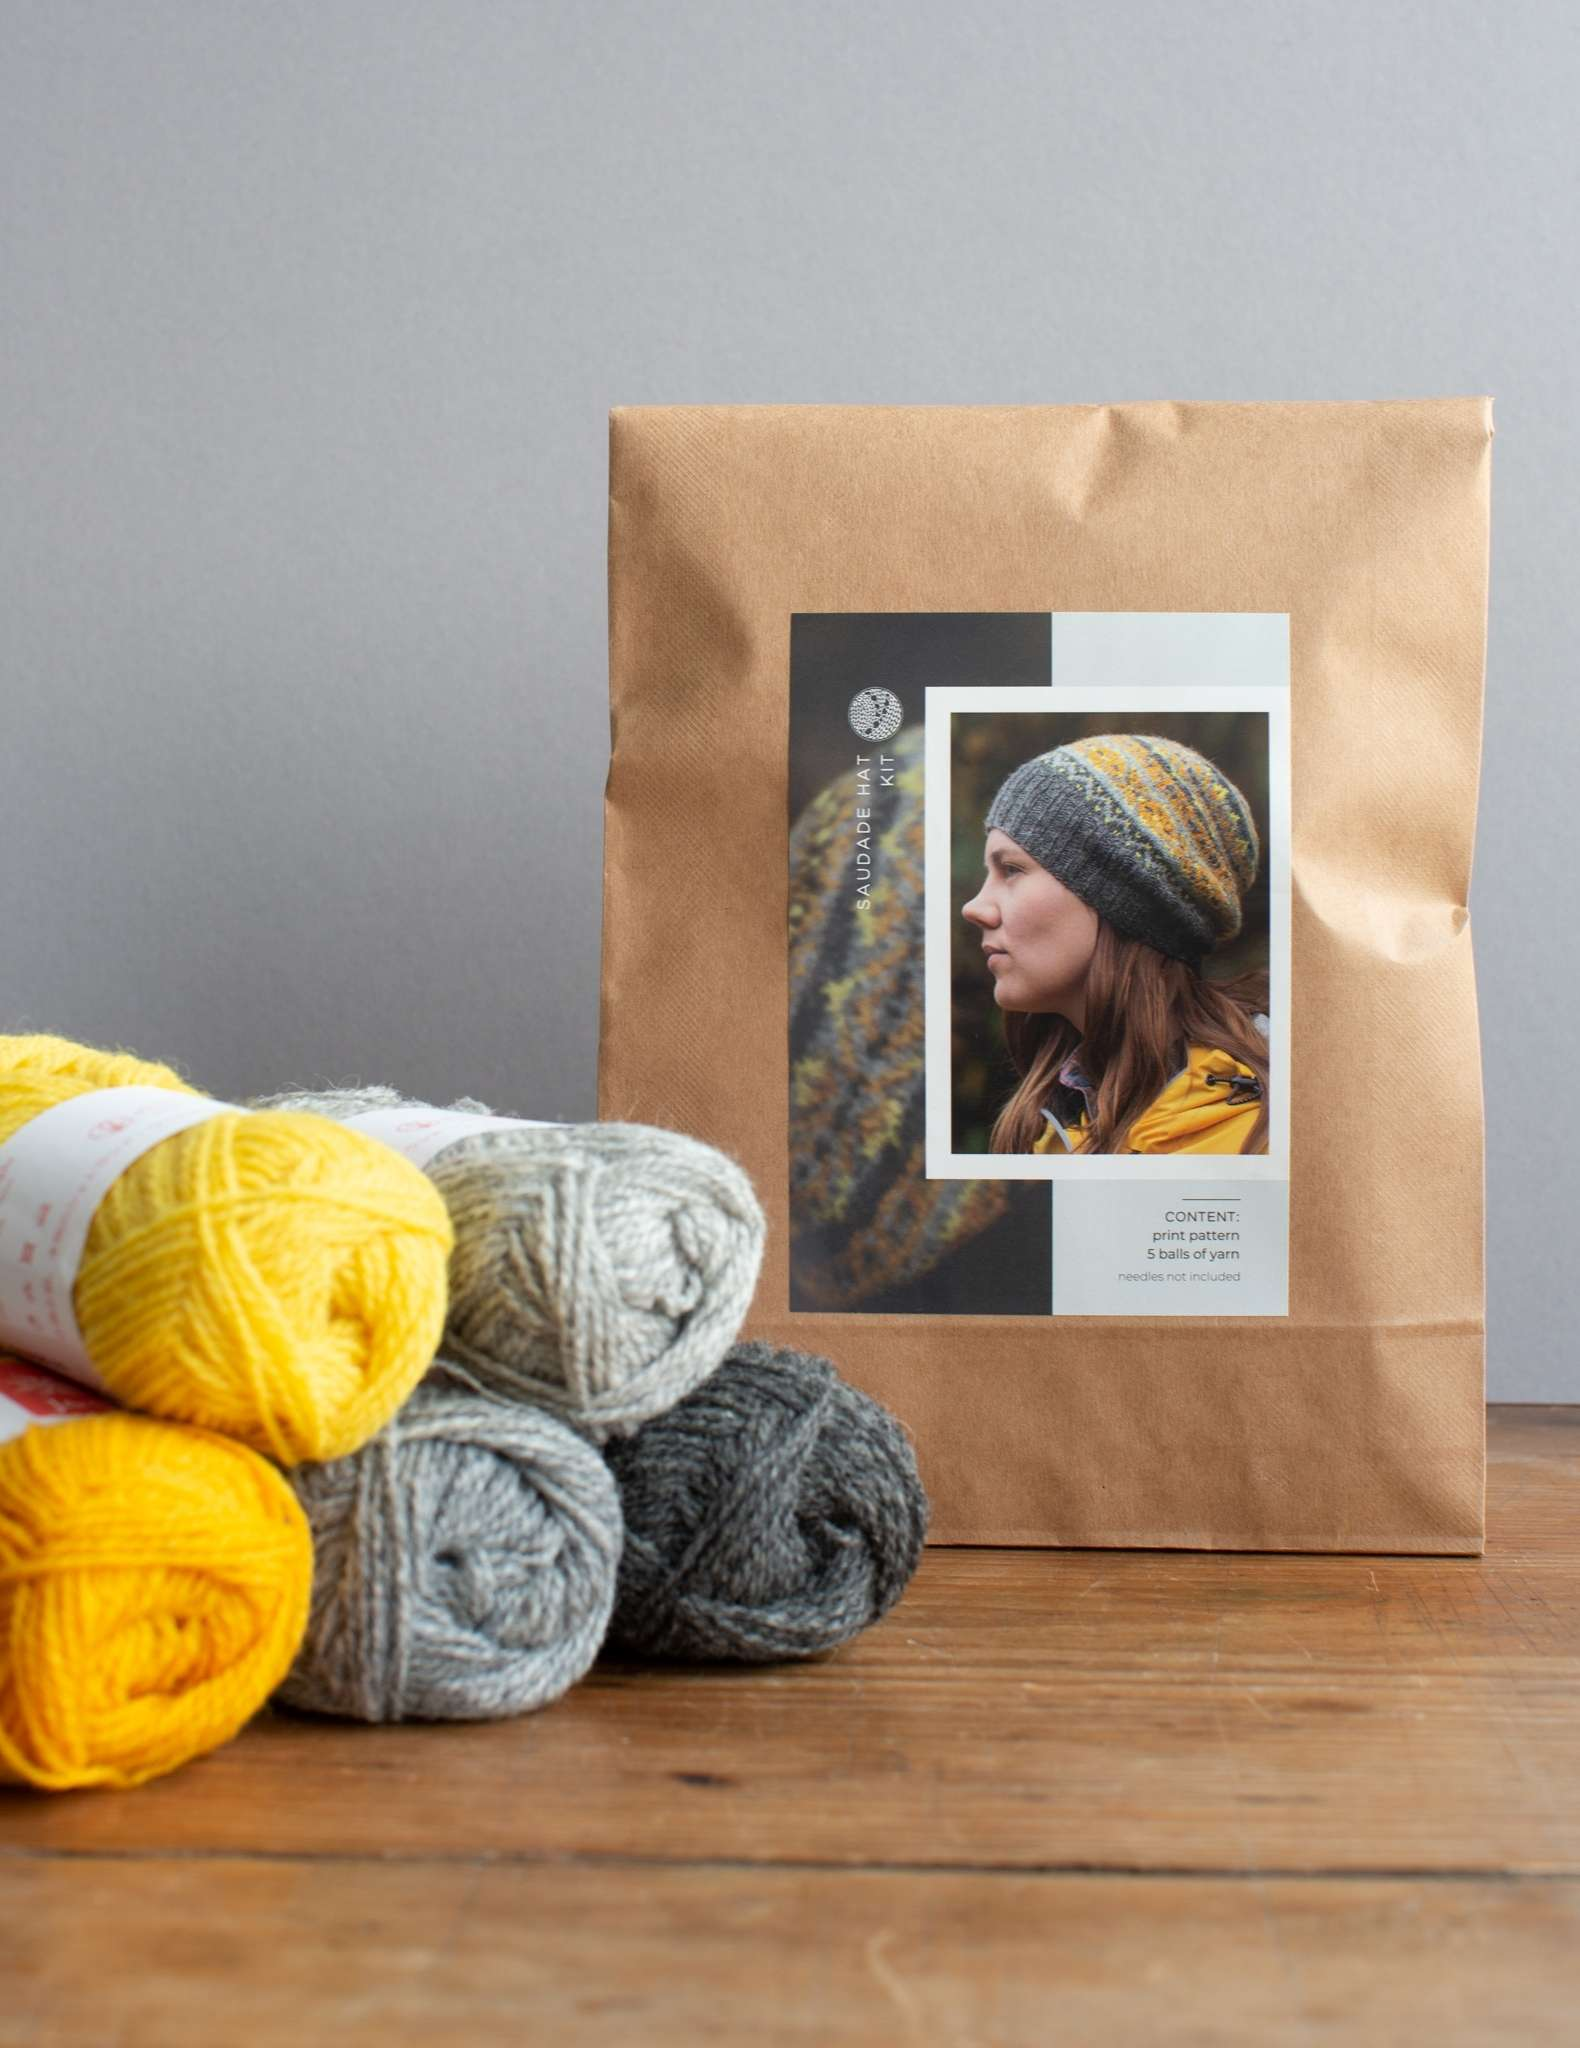 A hat knitting kit in a paper bag, sitting beside 5 balls of yarn in yellow and greys.